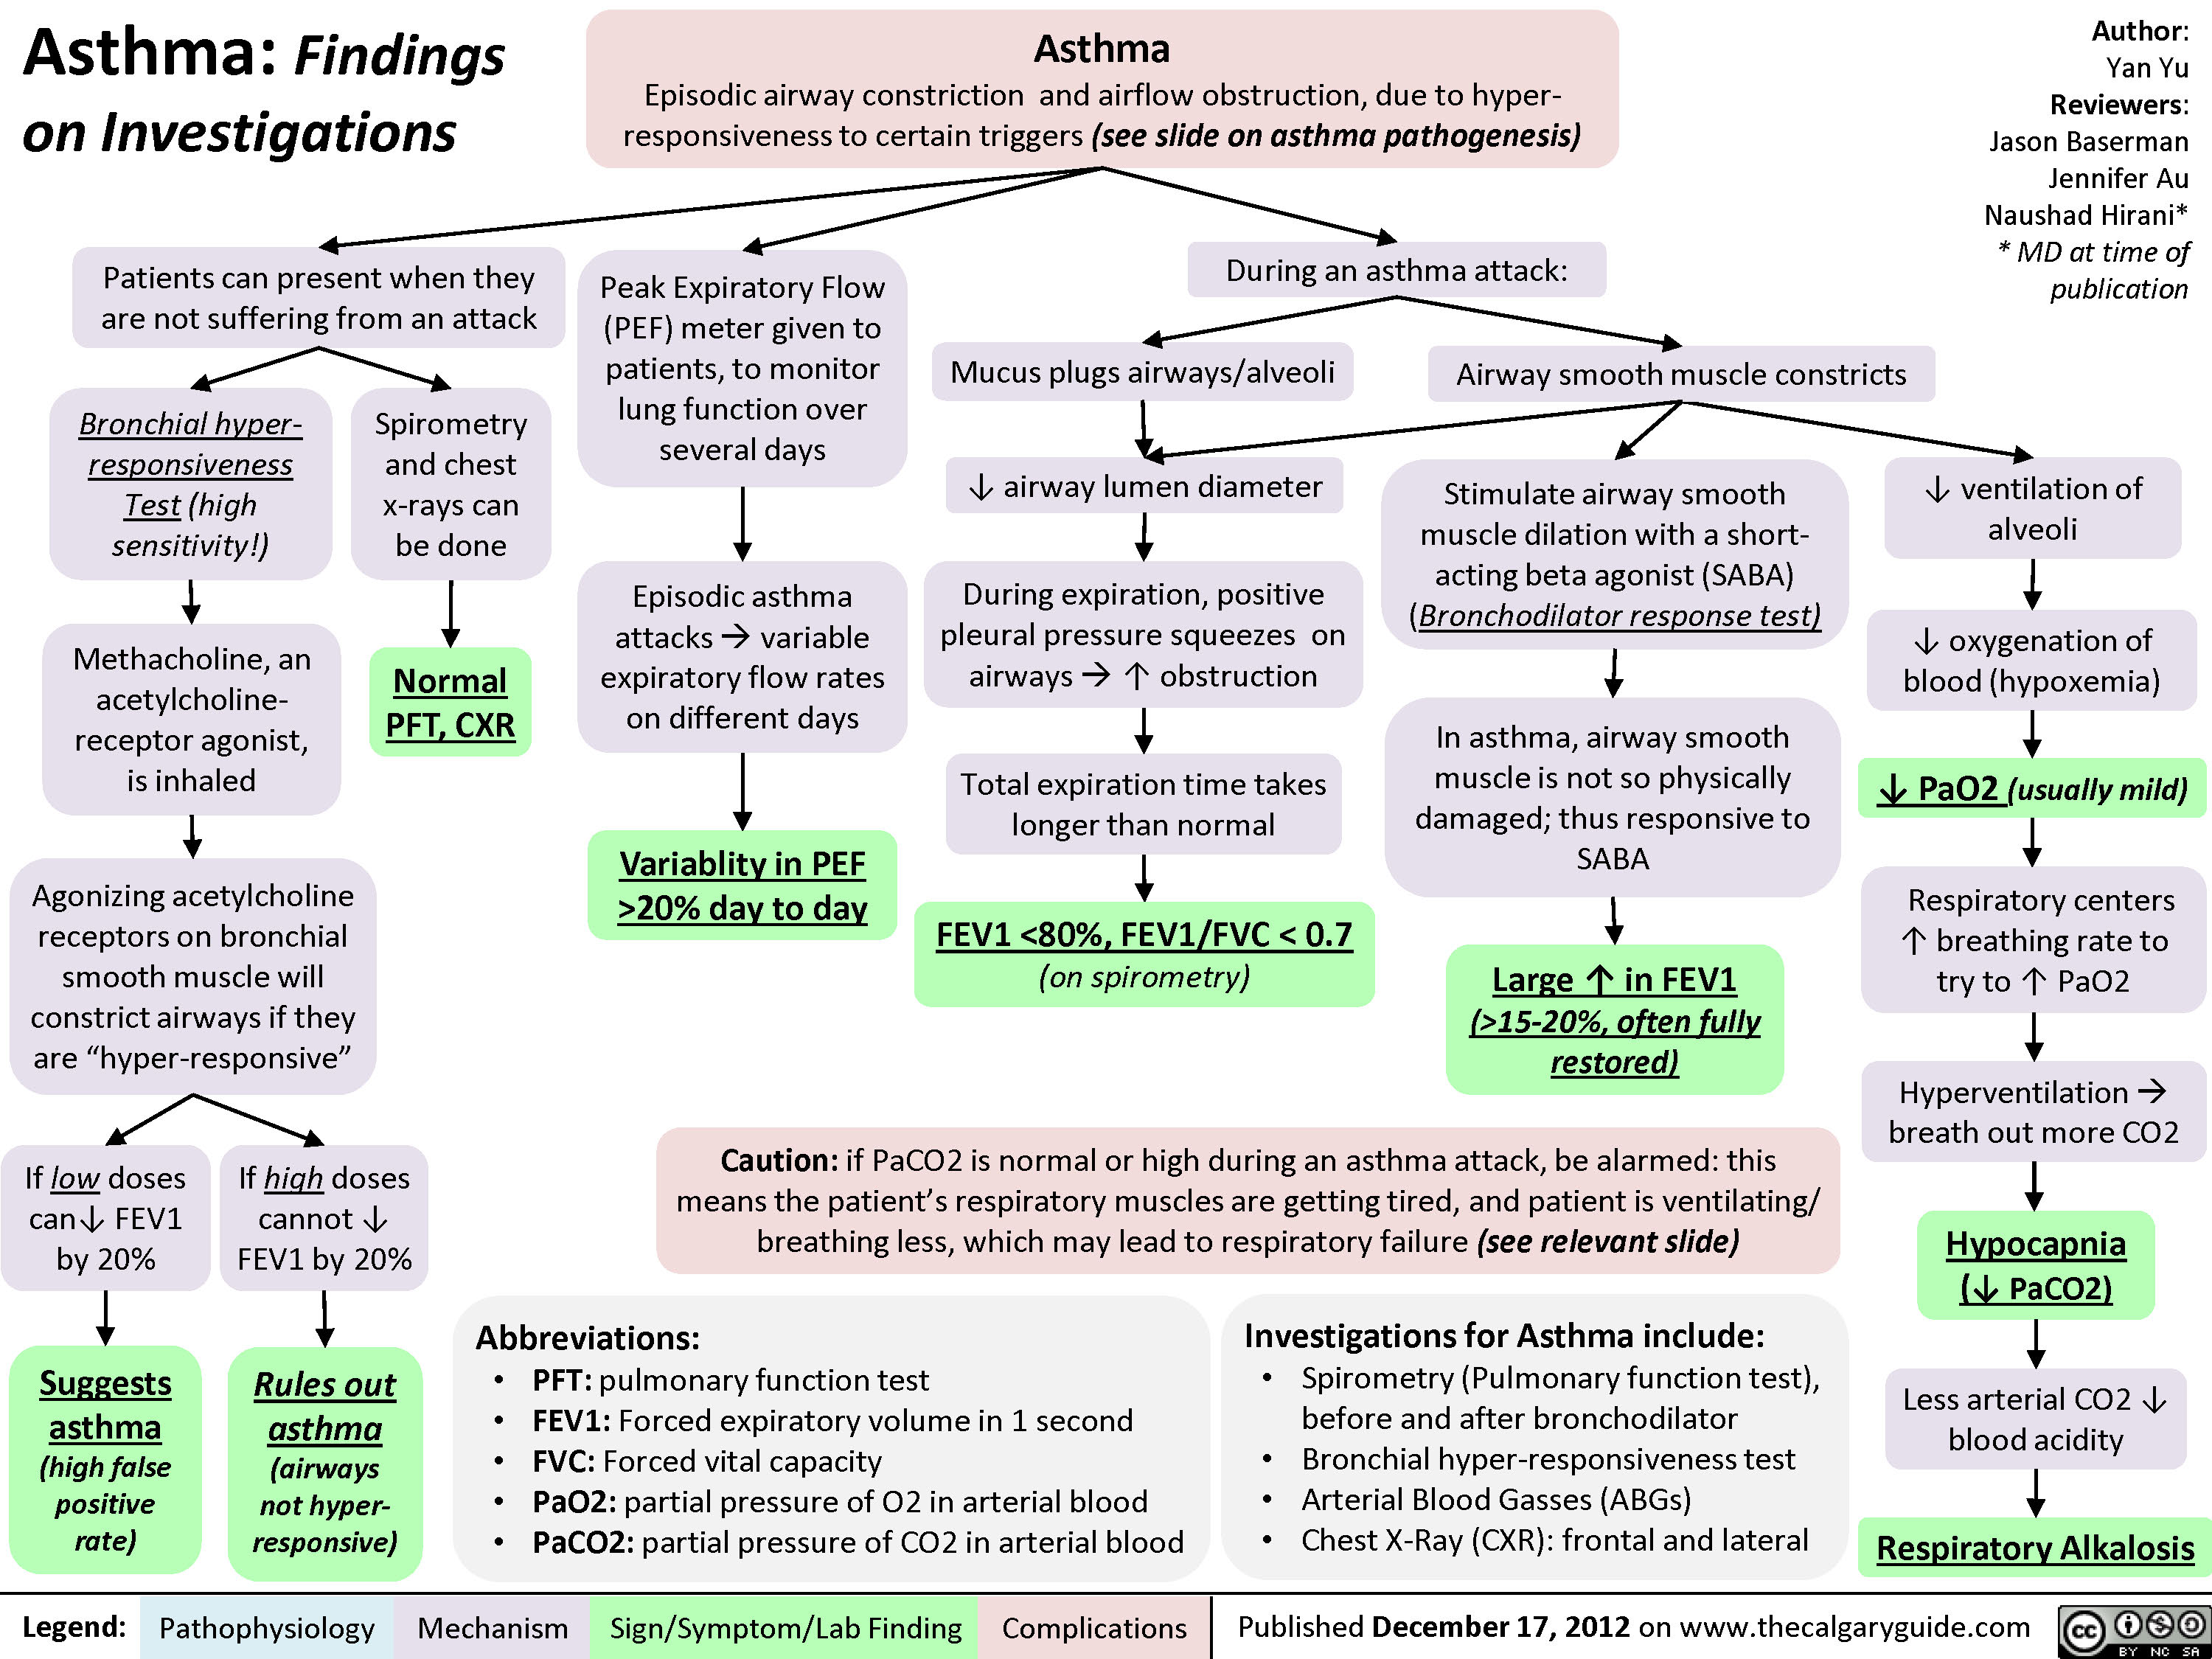 Asthma: Findings on Investigations